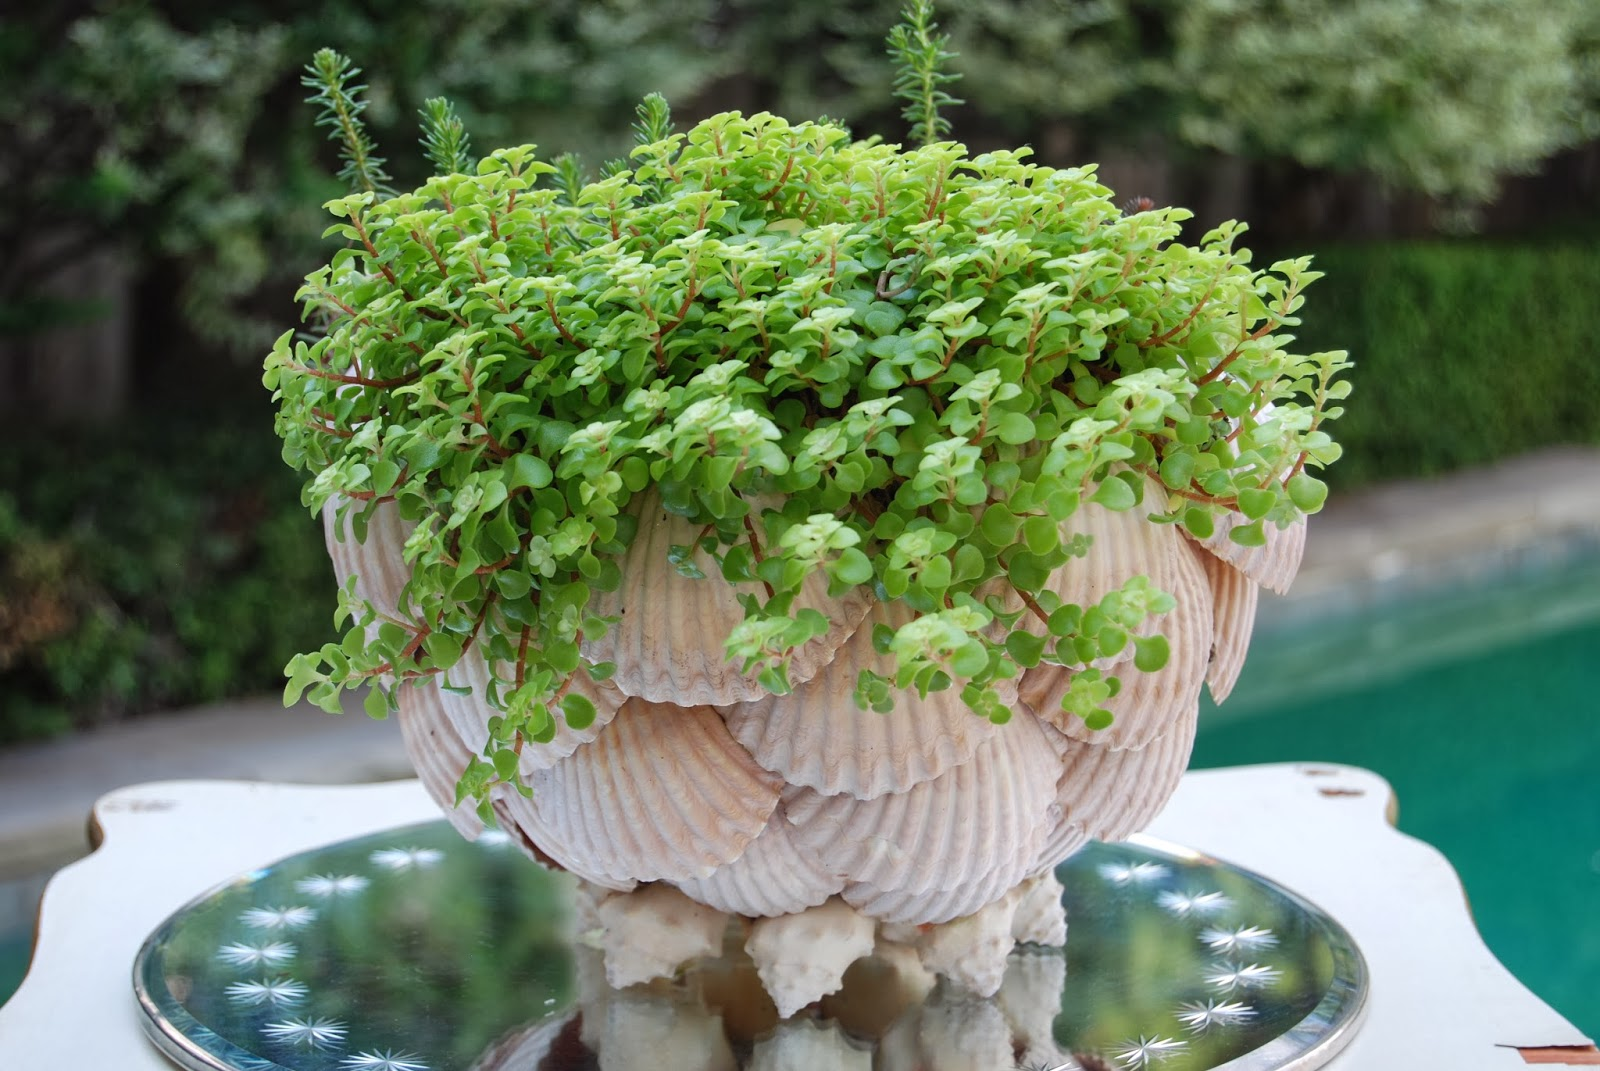 Scalloped clam shell planter